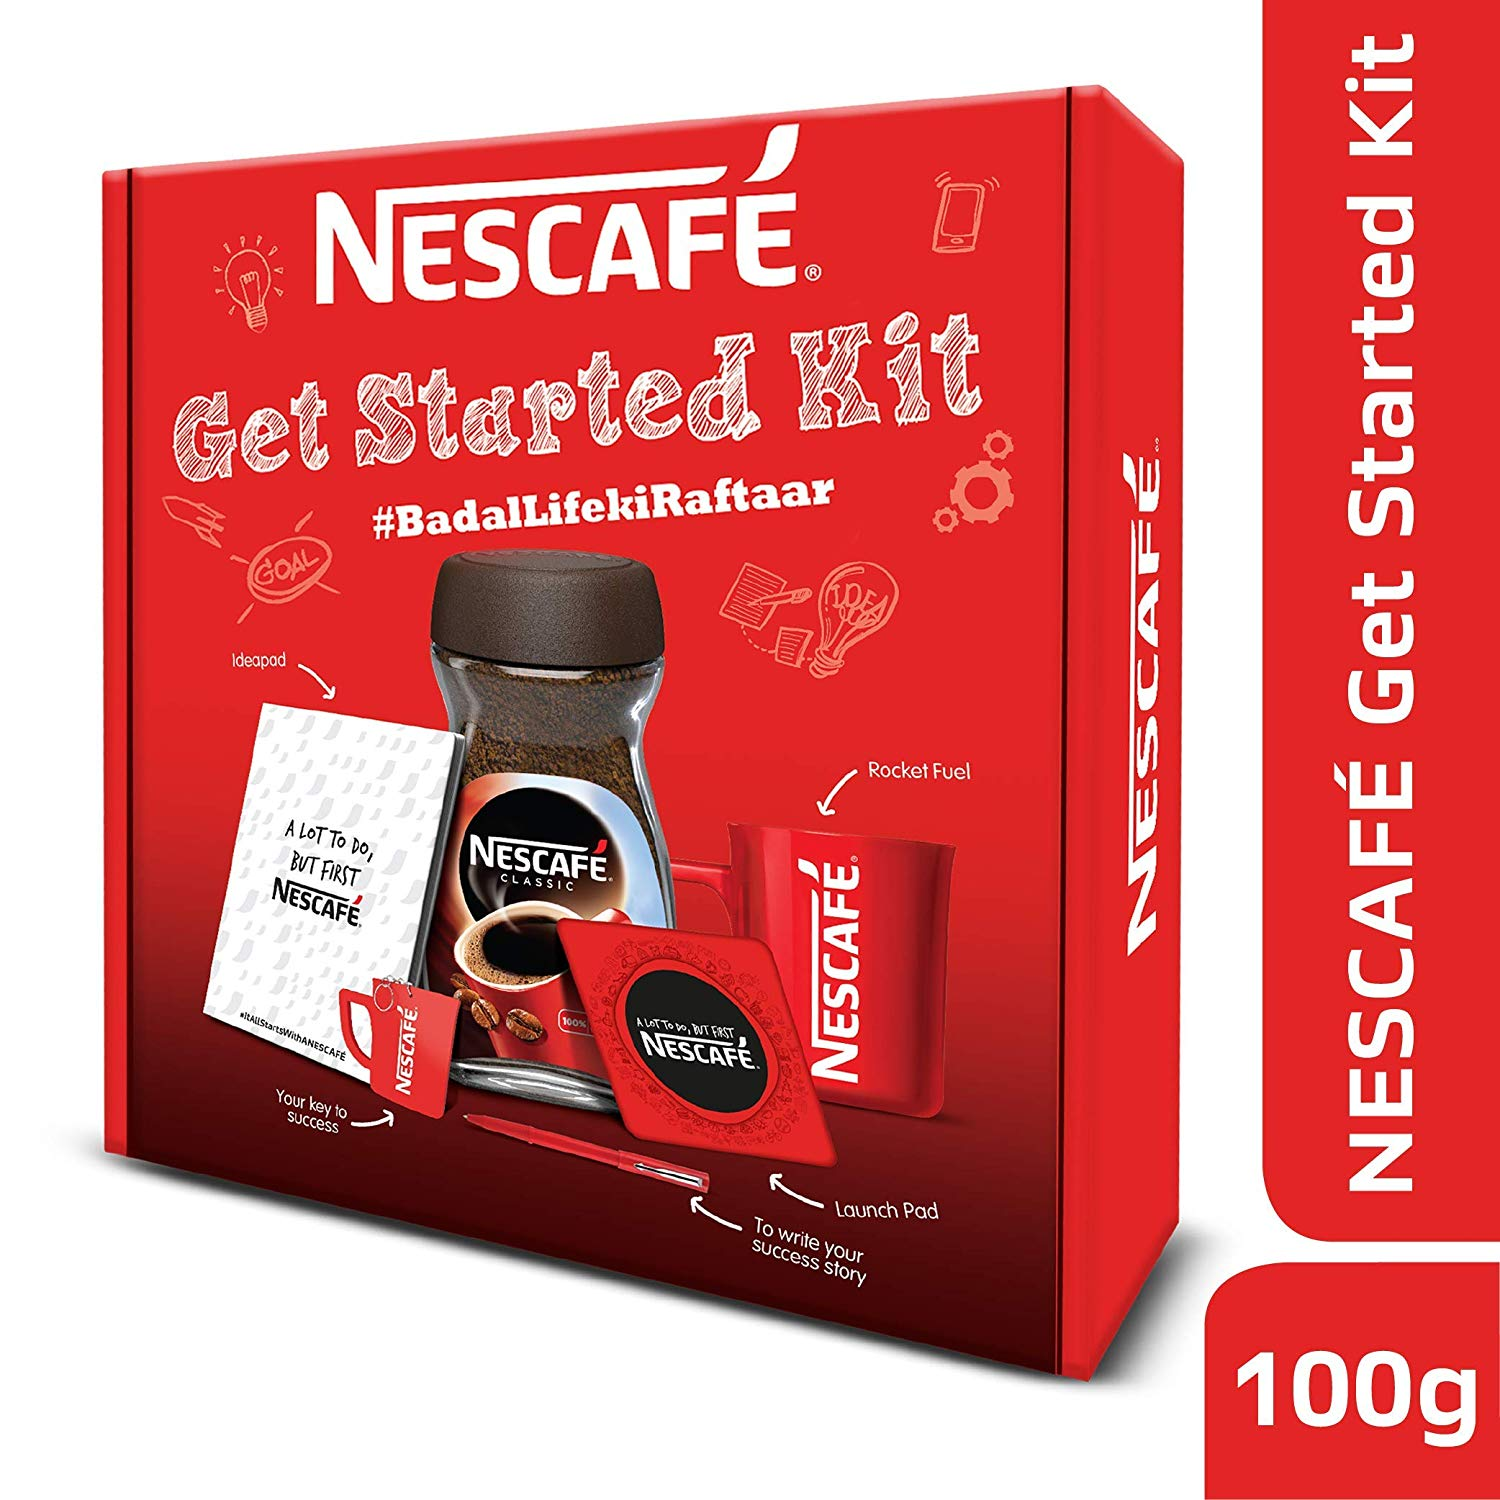 Nescafe Classic Get Started Coffee Kit, 100g at Rs.384 only